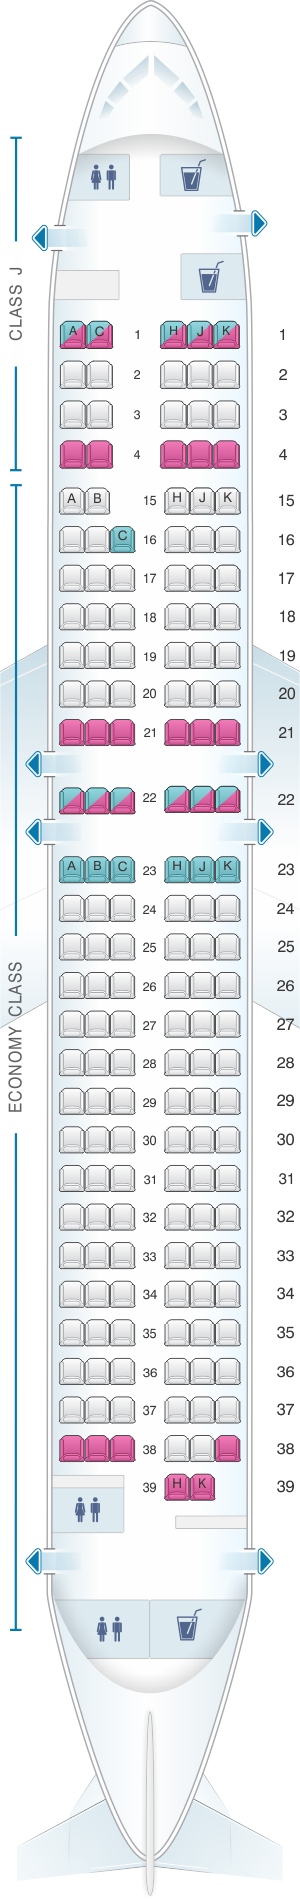 Seat map for Japan Airlines (JAL) Boeing B737 800 V30/V32